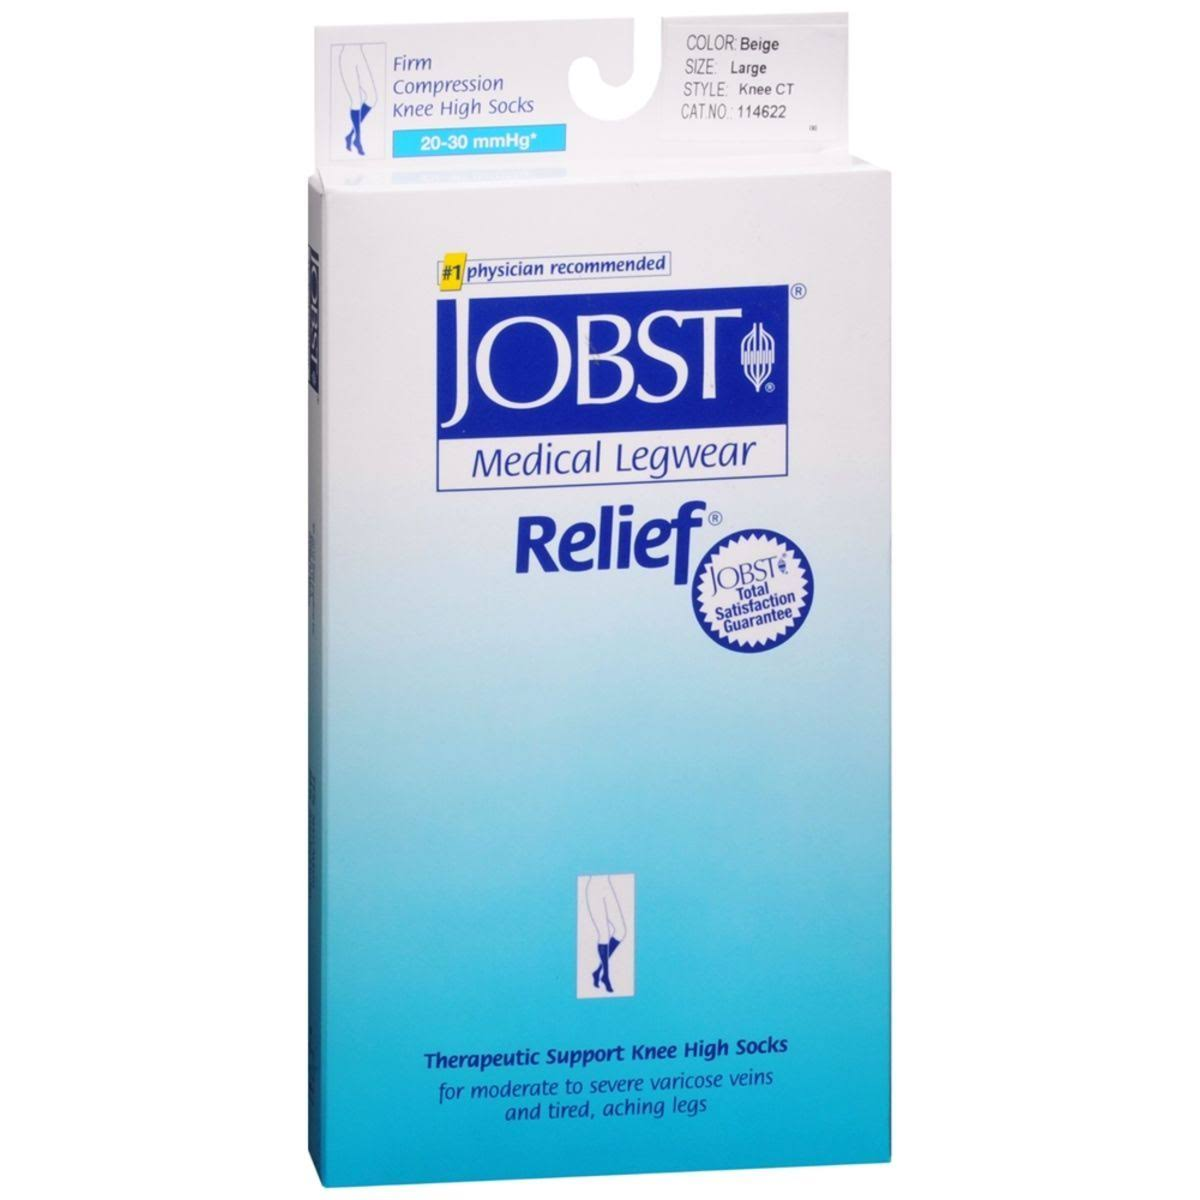 Jobst Medical Legwear Relief Knee High Socks - Large, Beige, 1 Pair, 20-30mmHg